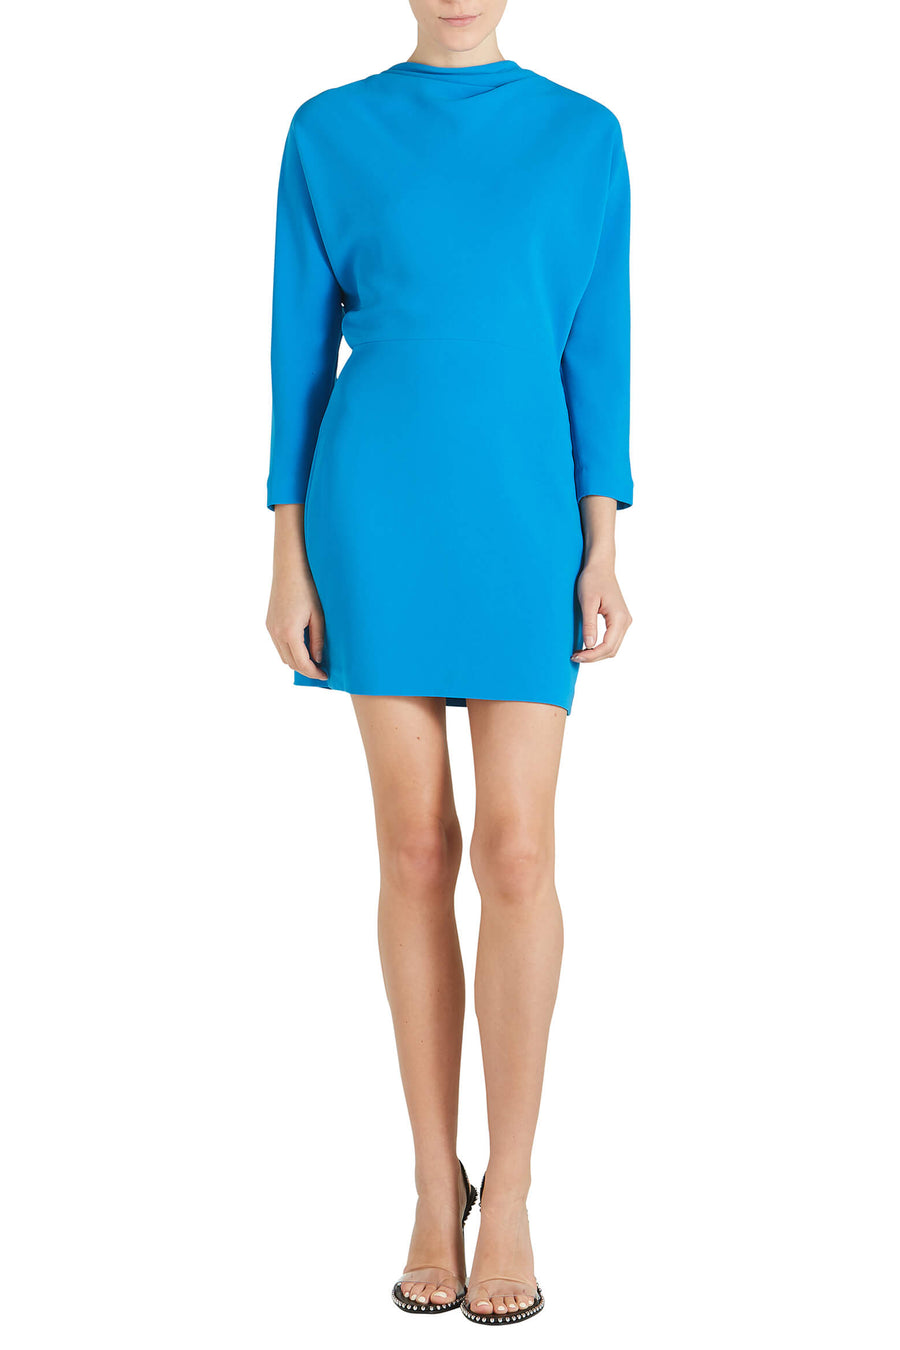 A.L.C. Marin Dress in Ocean from The New Trend